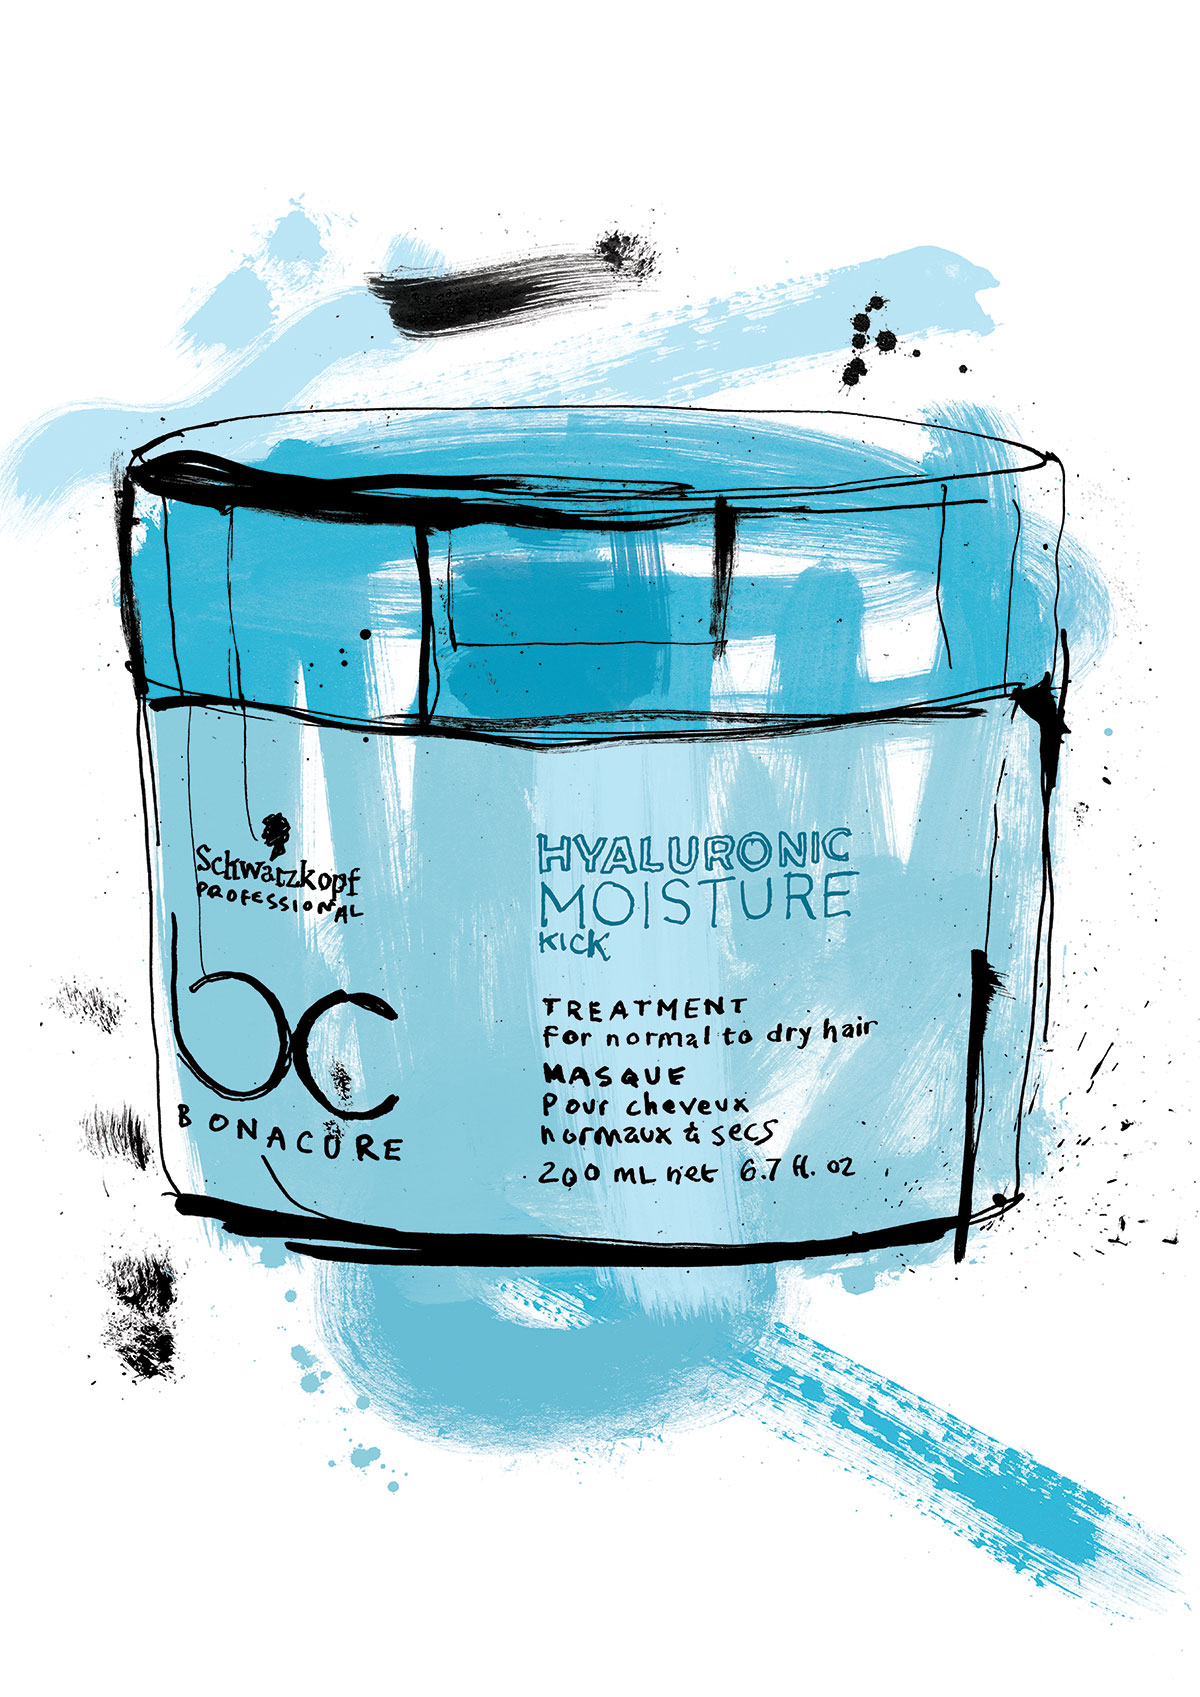 Hand drawn schwarzkopf summer campaign advertising illustration, artwork for advertising, painted loose textures